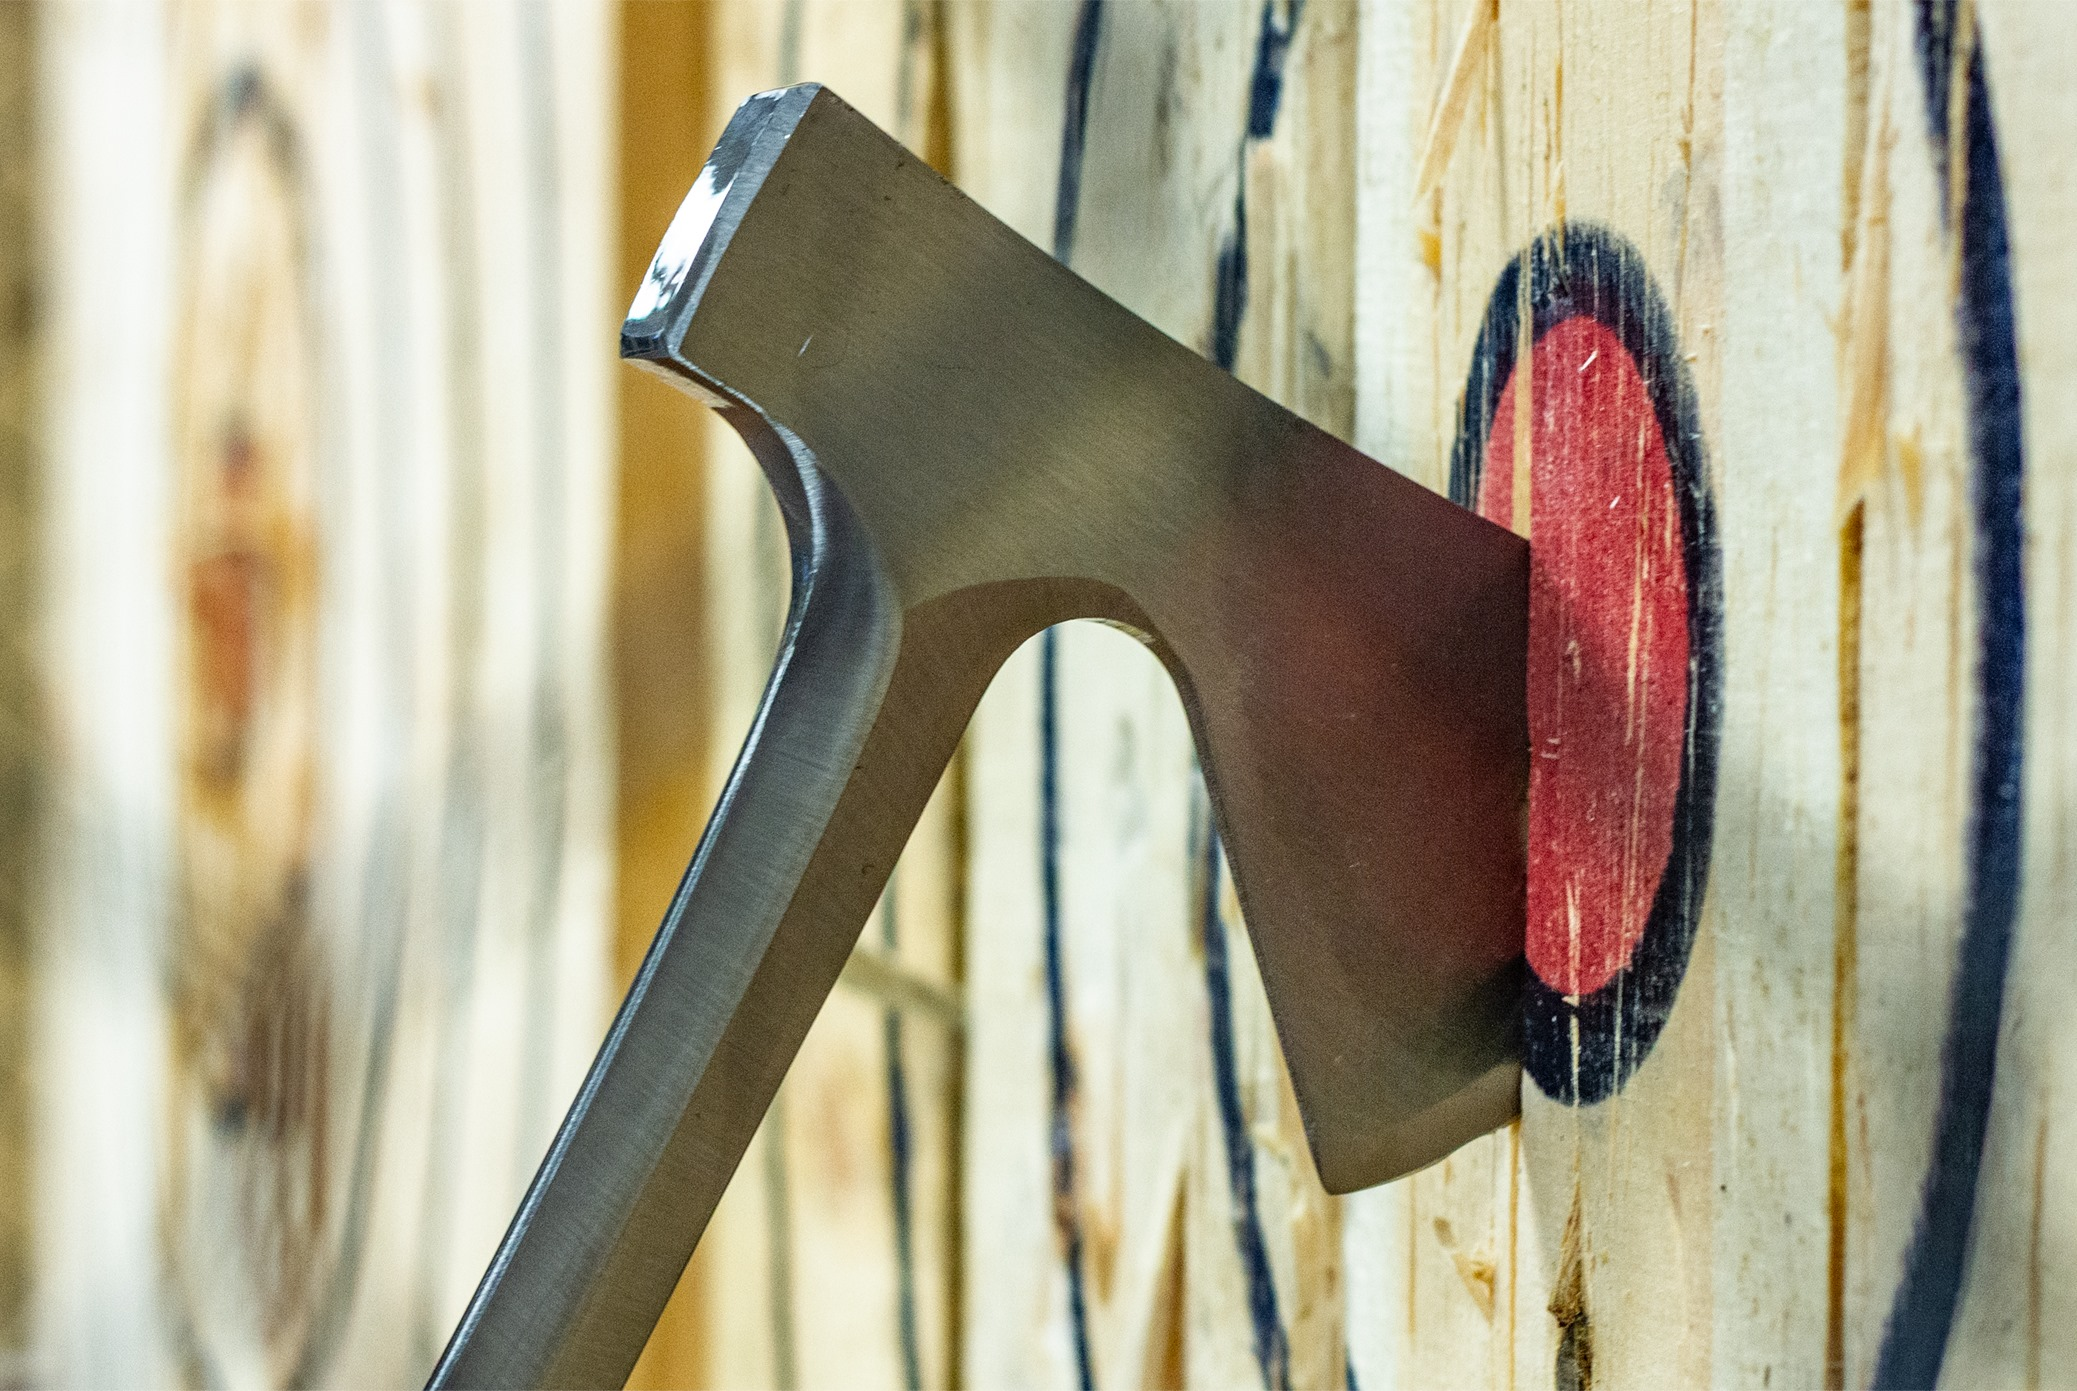 Axe Throwing in Quinte West